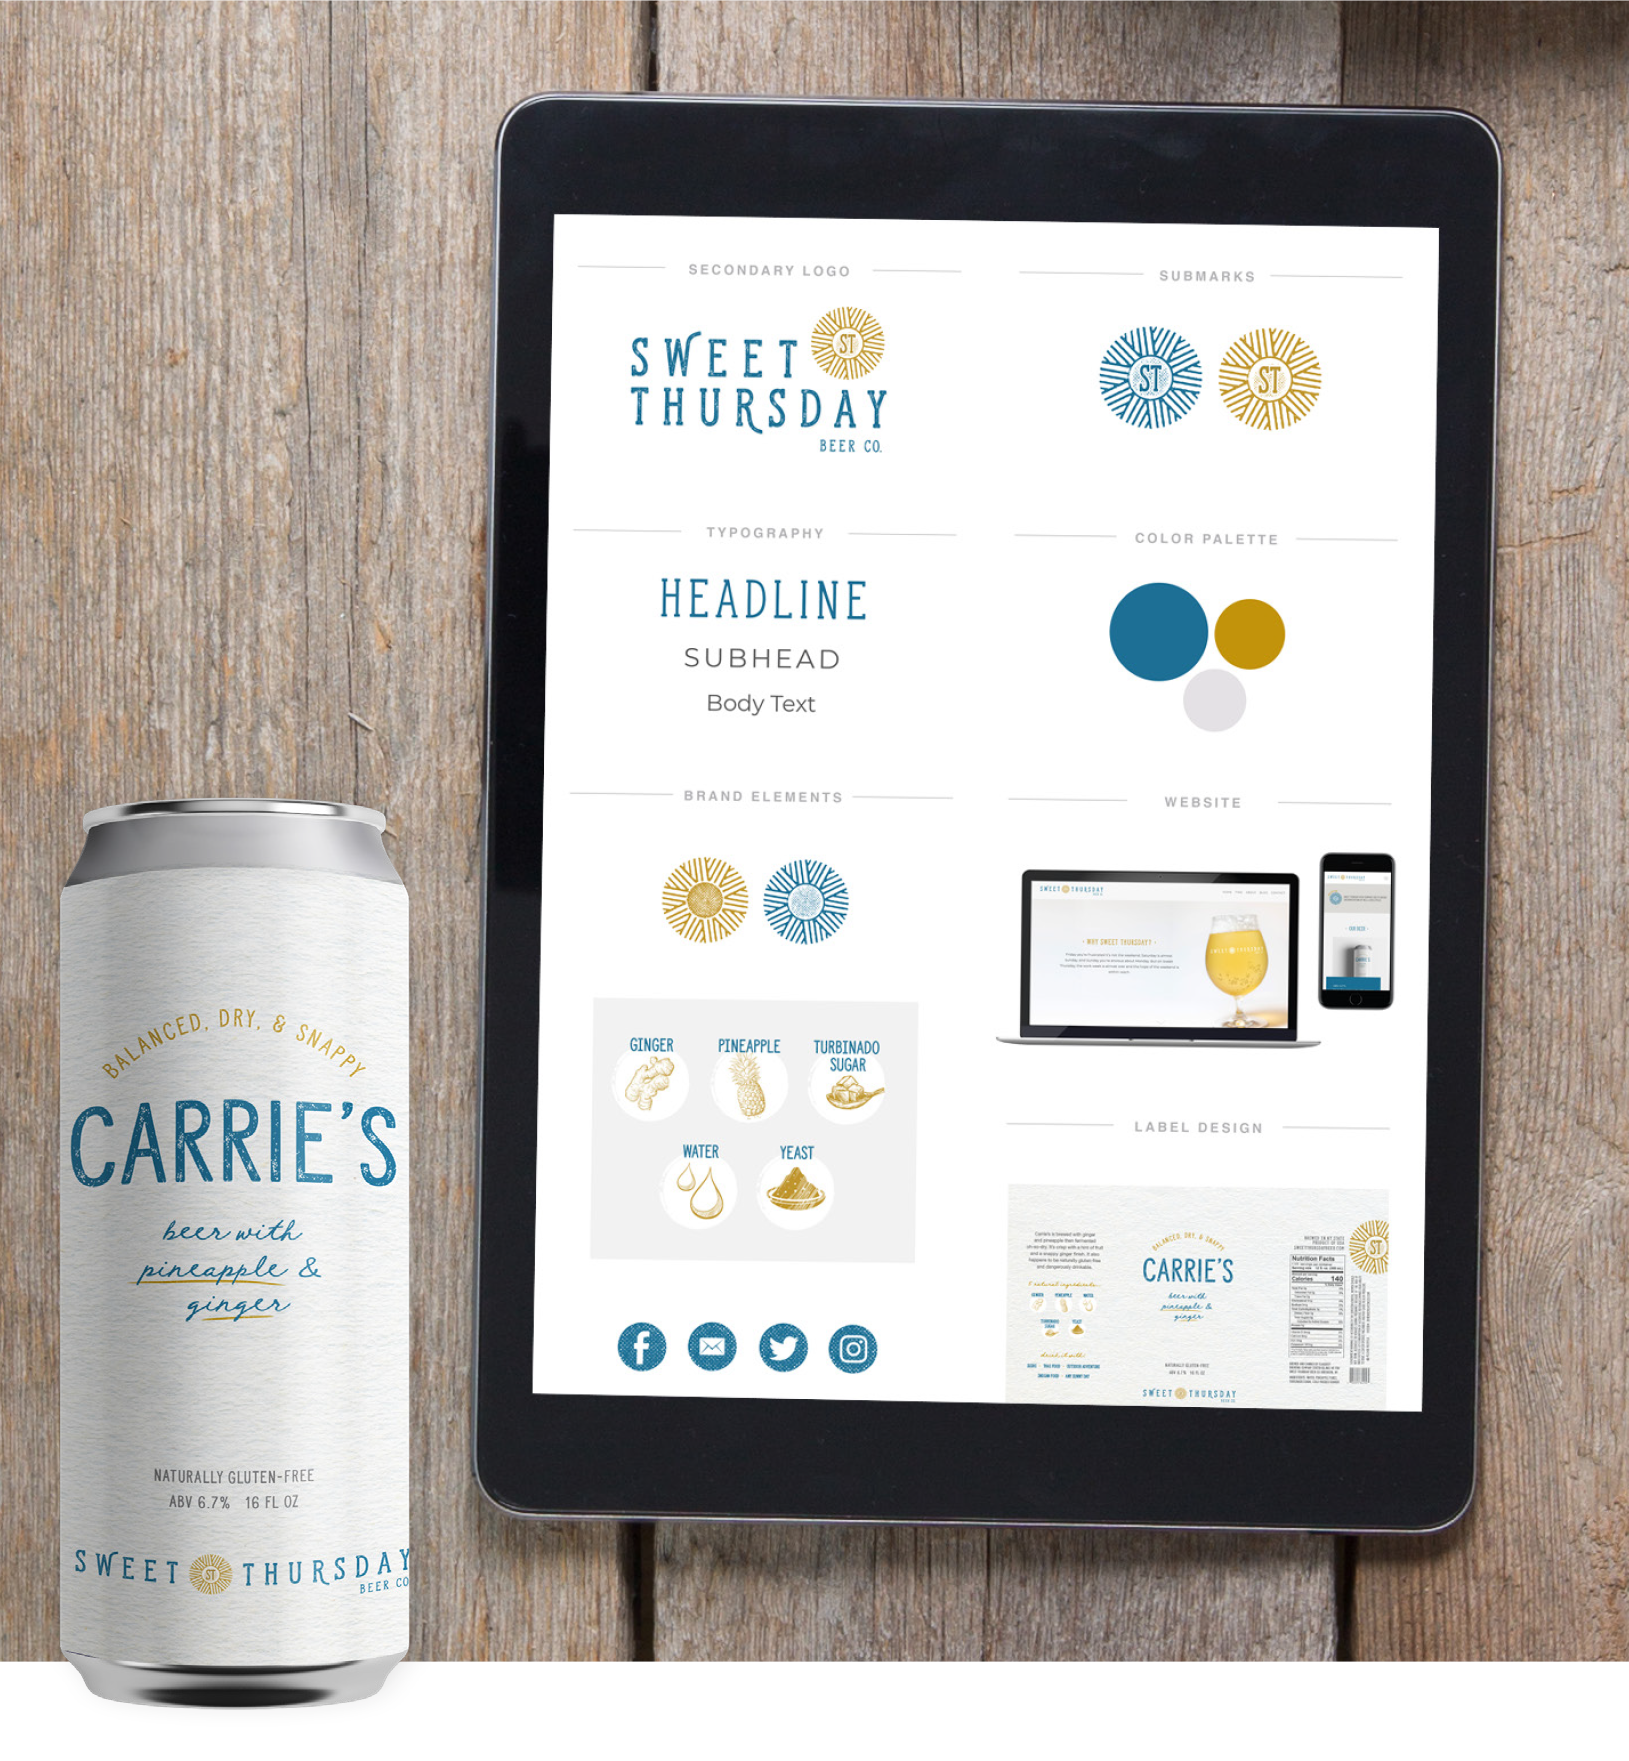 Sweet Thursday Beer Co. - Branding & Website Design